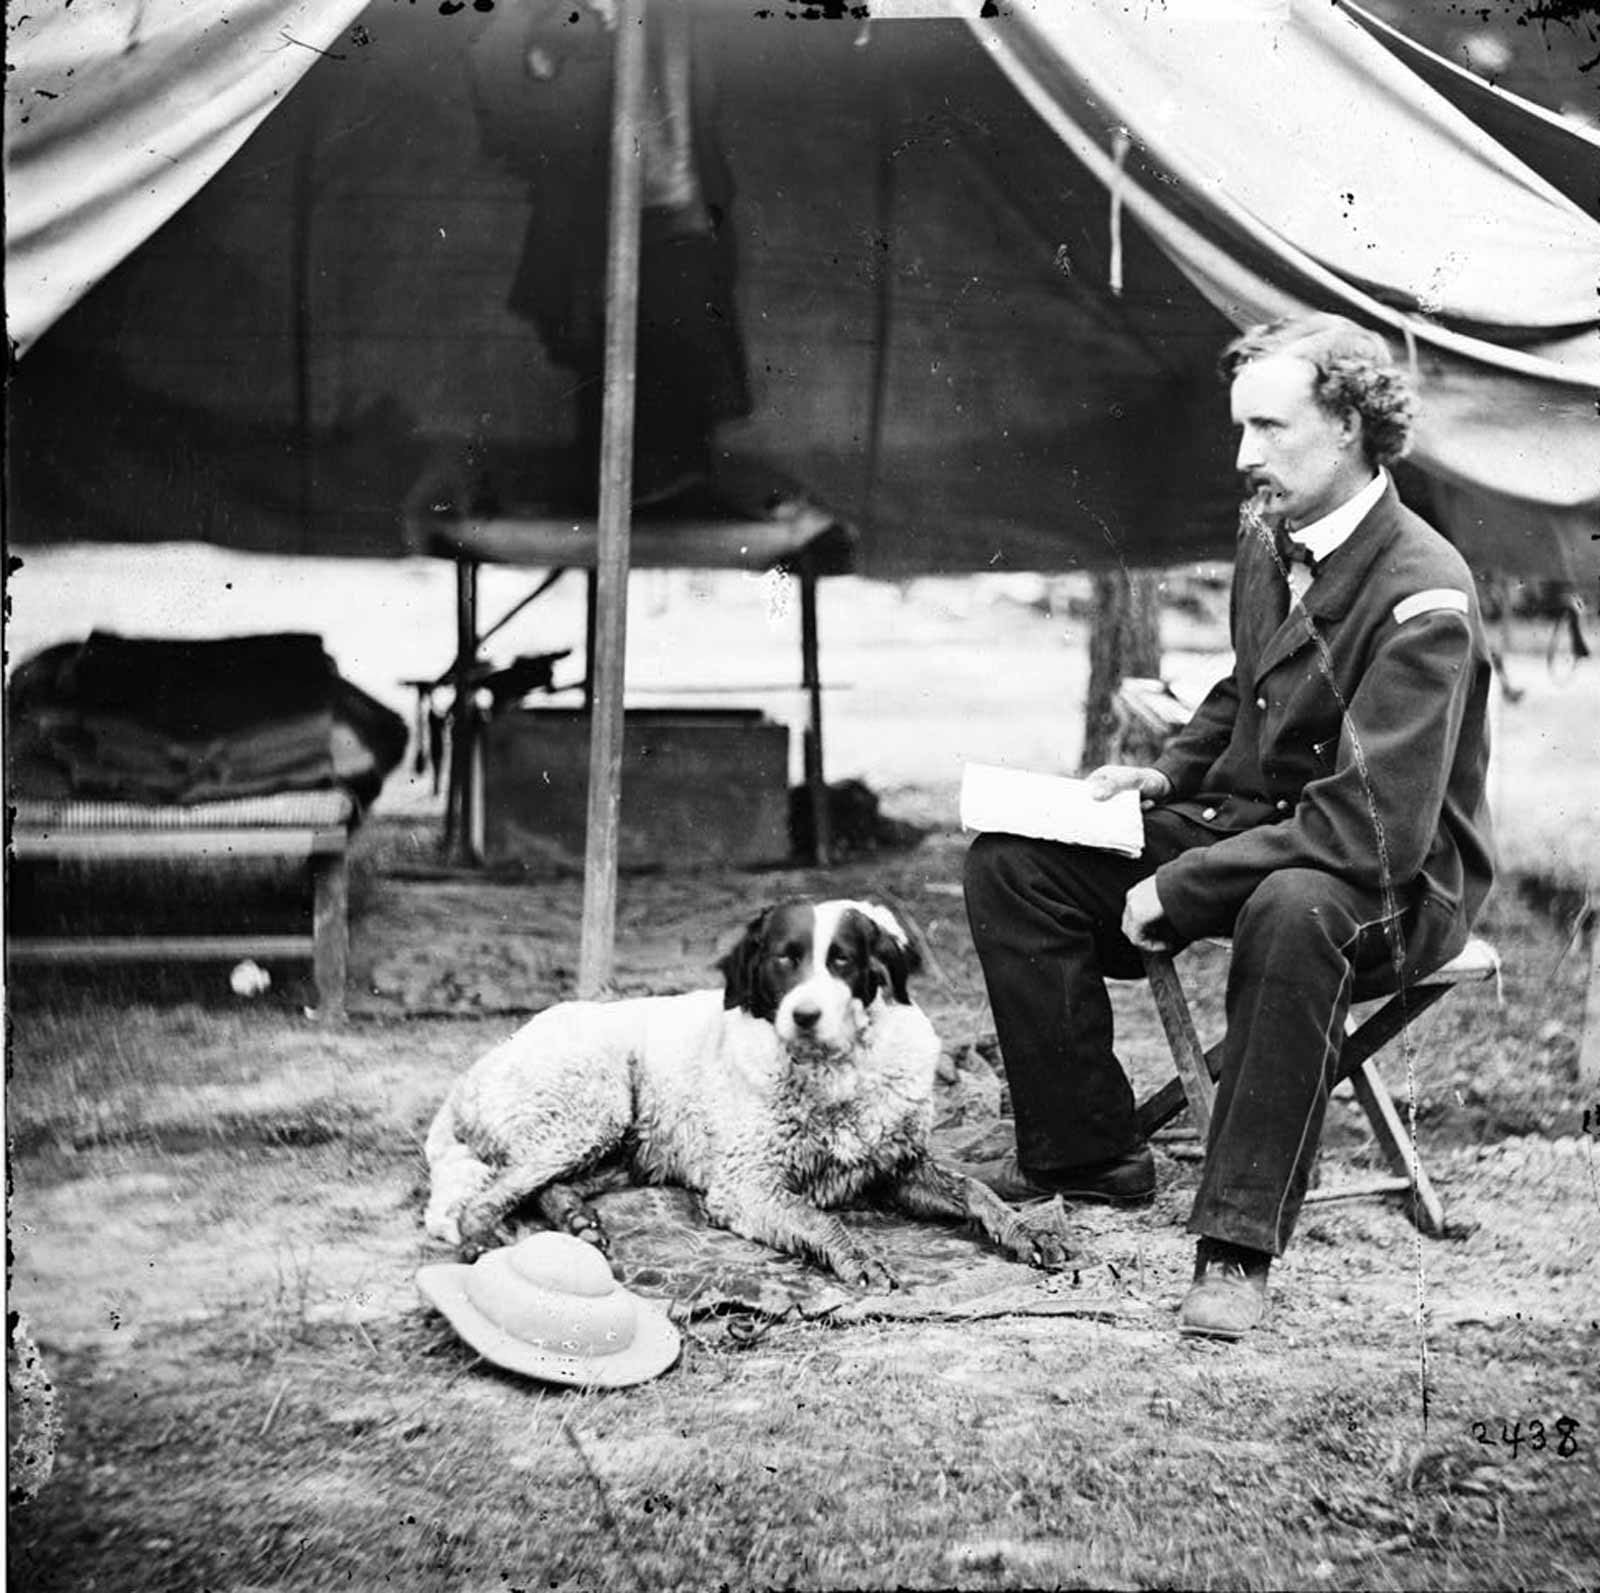 Civil War Dog Camp Comfort  Then-Lt. George Custer with his dog during the Peninsula Campaign, 1862. Throughout history dogs have provided companionship and comfort in the midst of war. Library of Congress photo